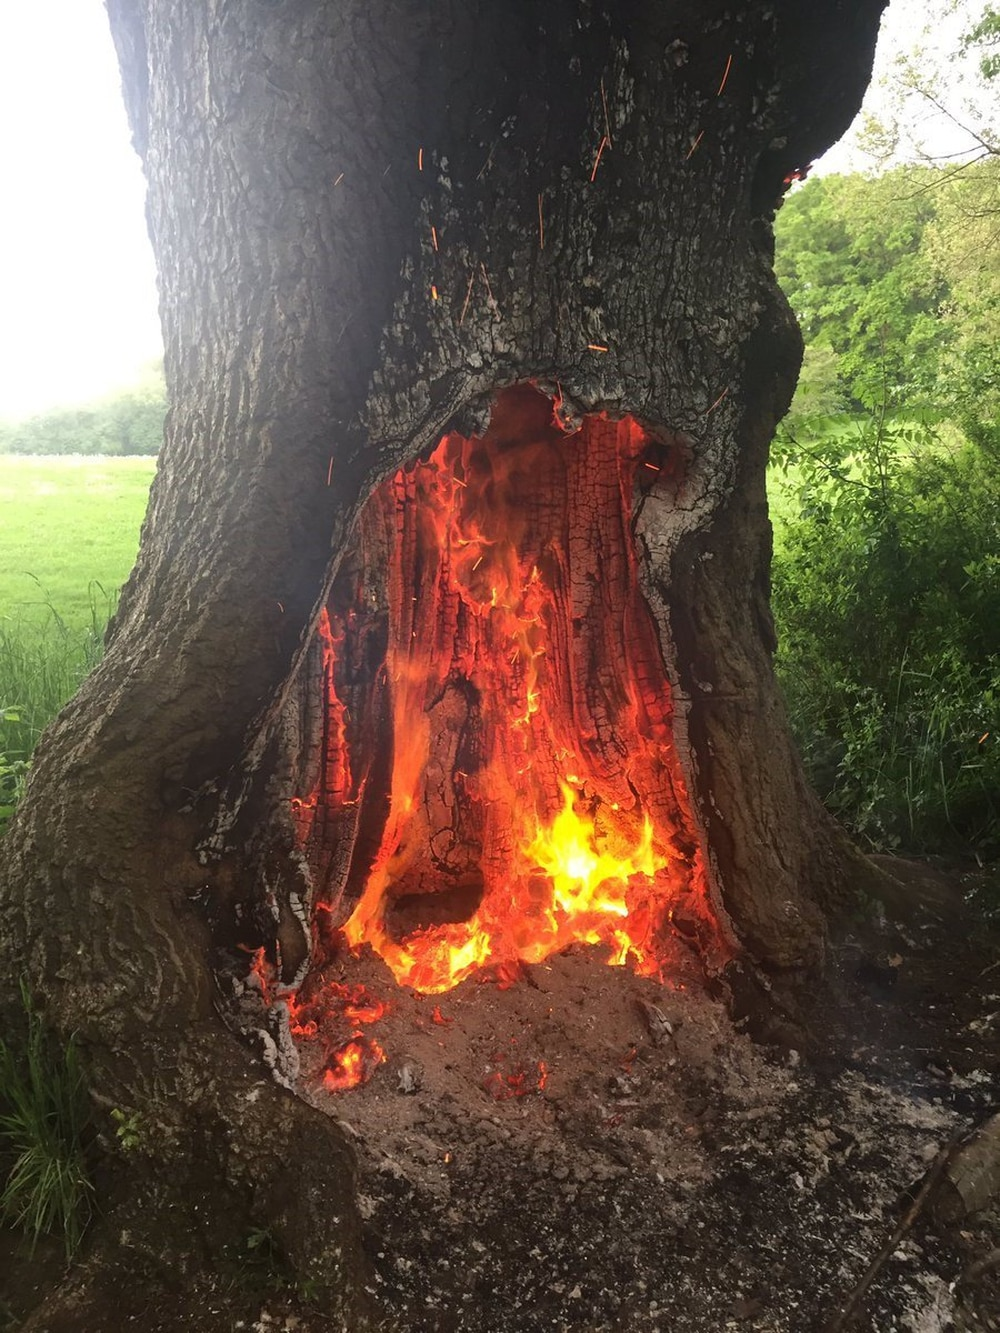 250-year-old ancient oak tree catches fire in Cannon Hill Park